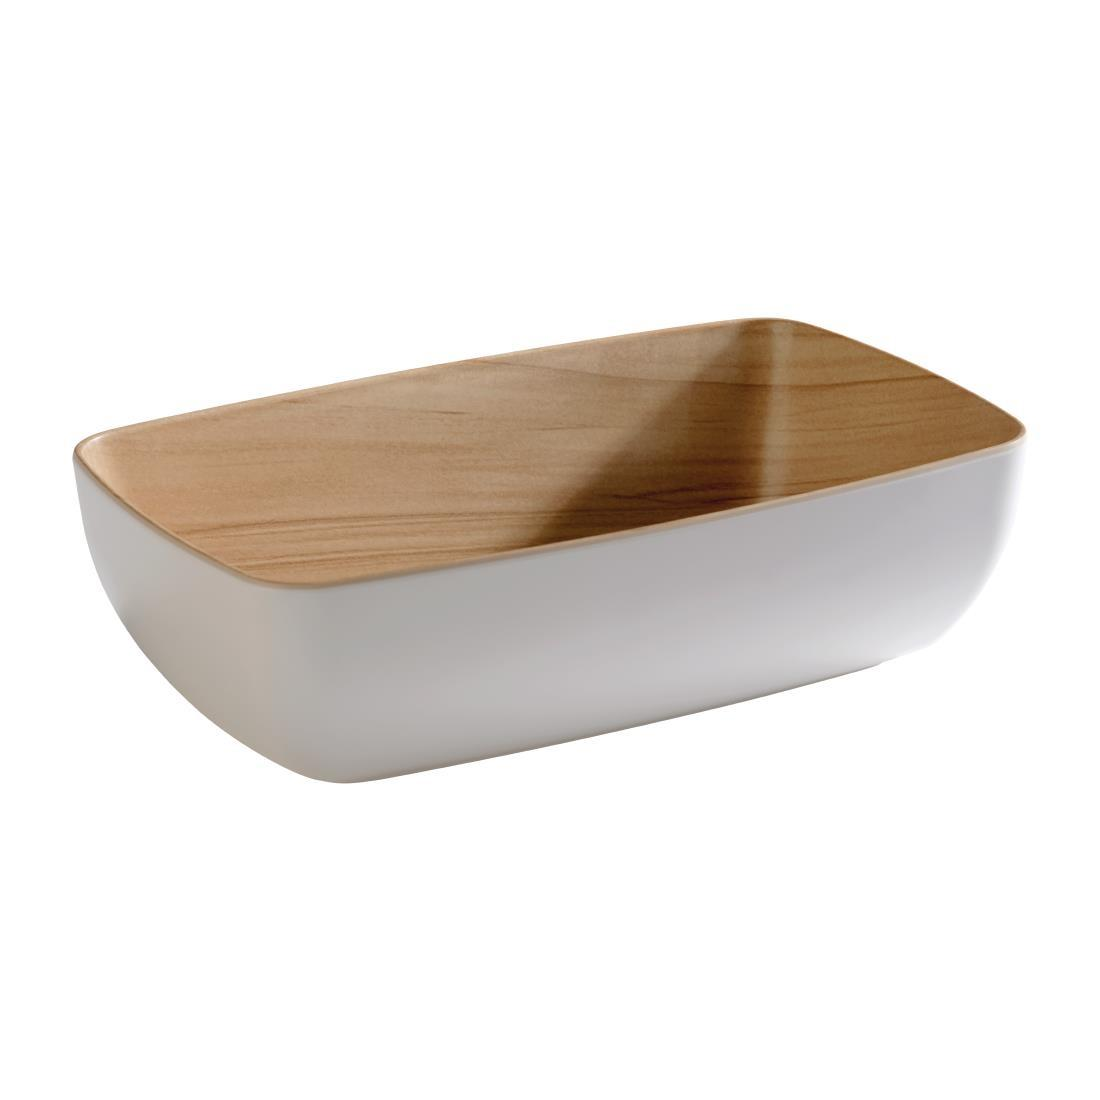 DW061 - APS Frida Bowl GN1/4 White - Each - DW061